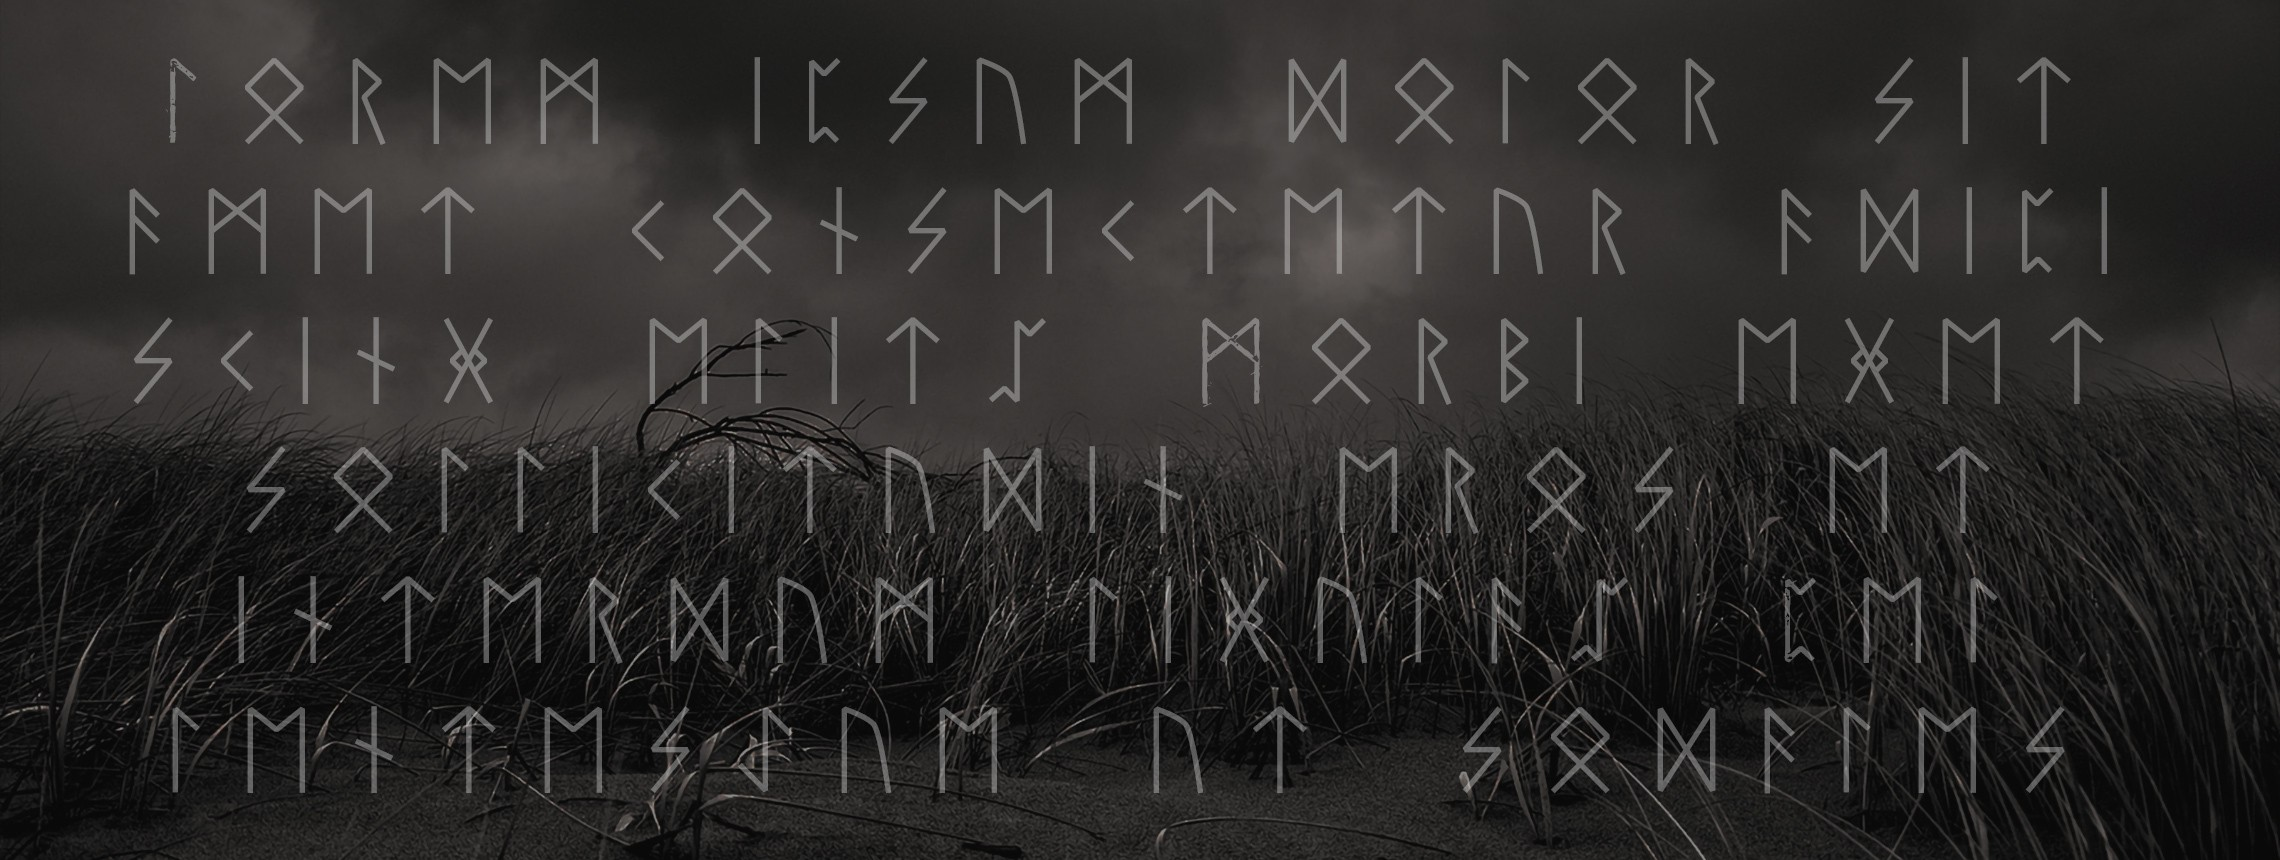 8 Nordic Runes Symbols Fonts and Typefaces